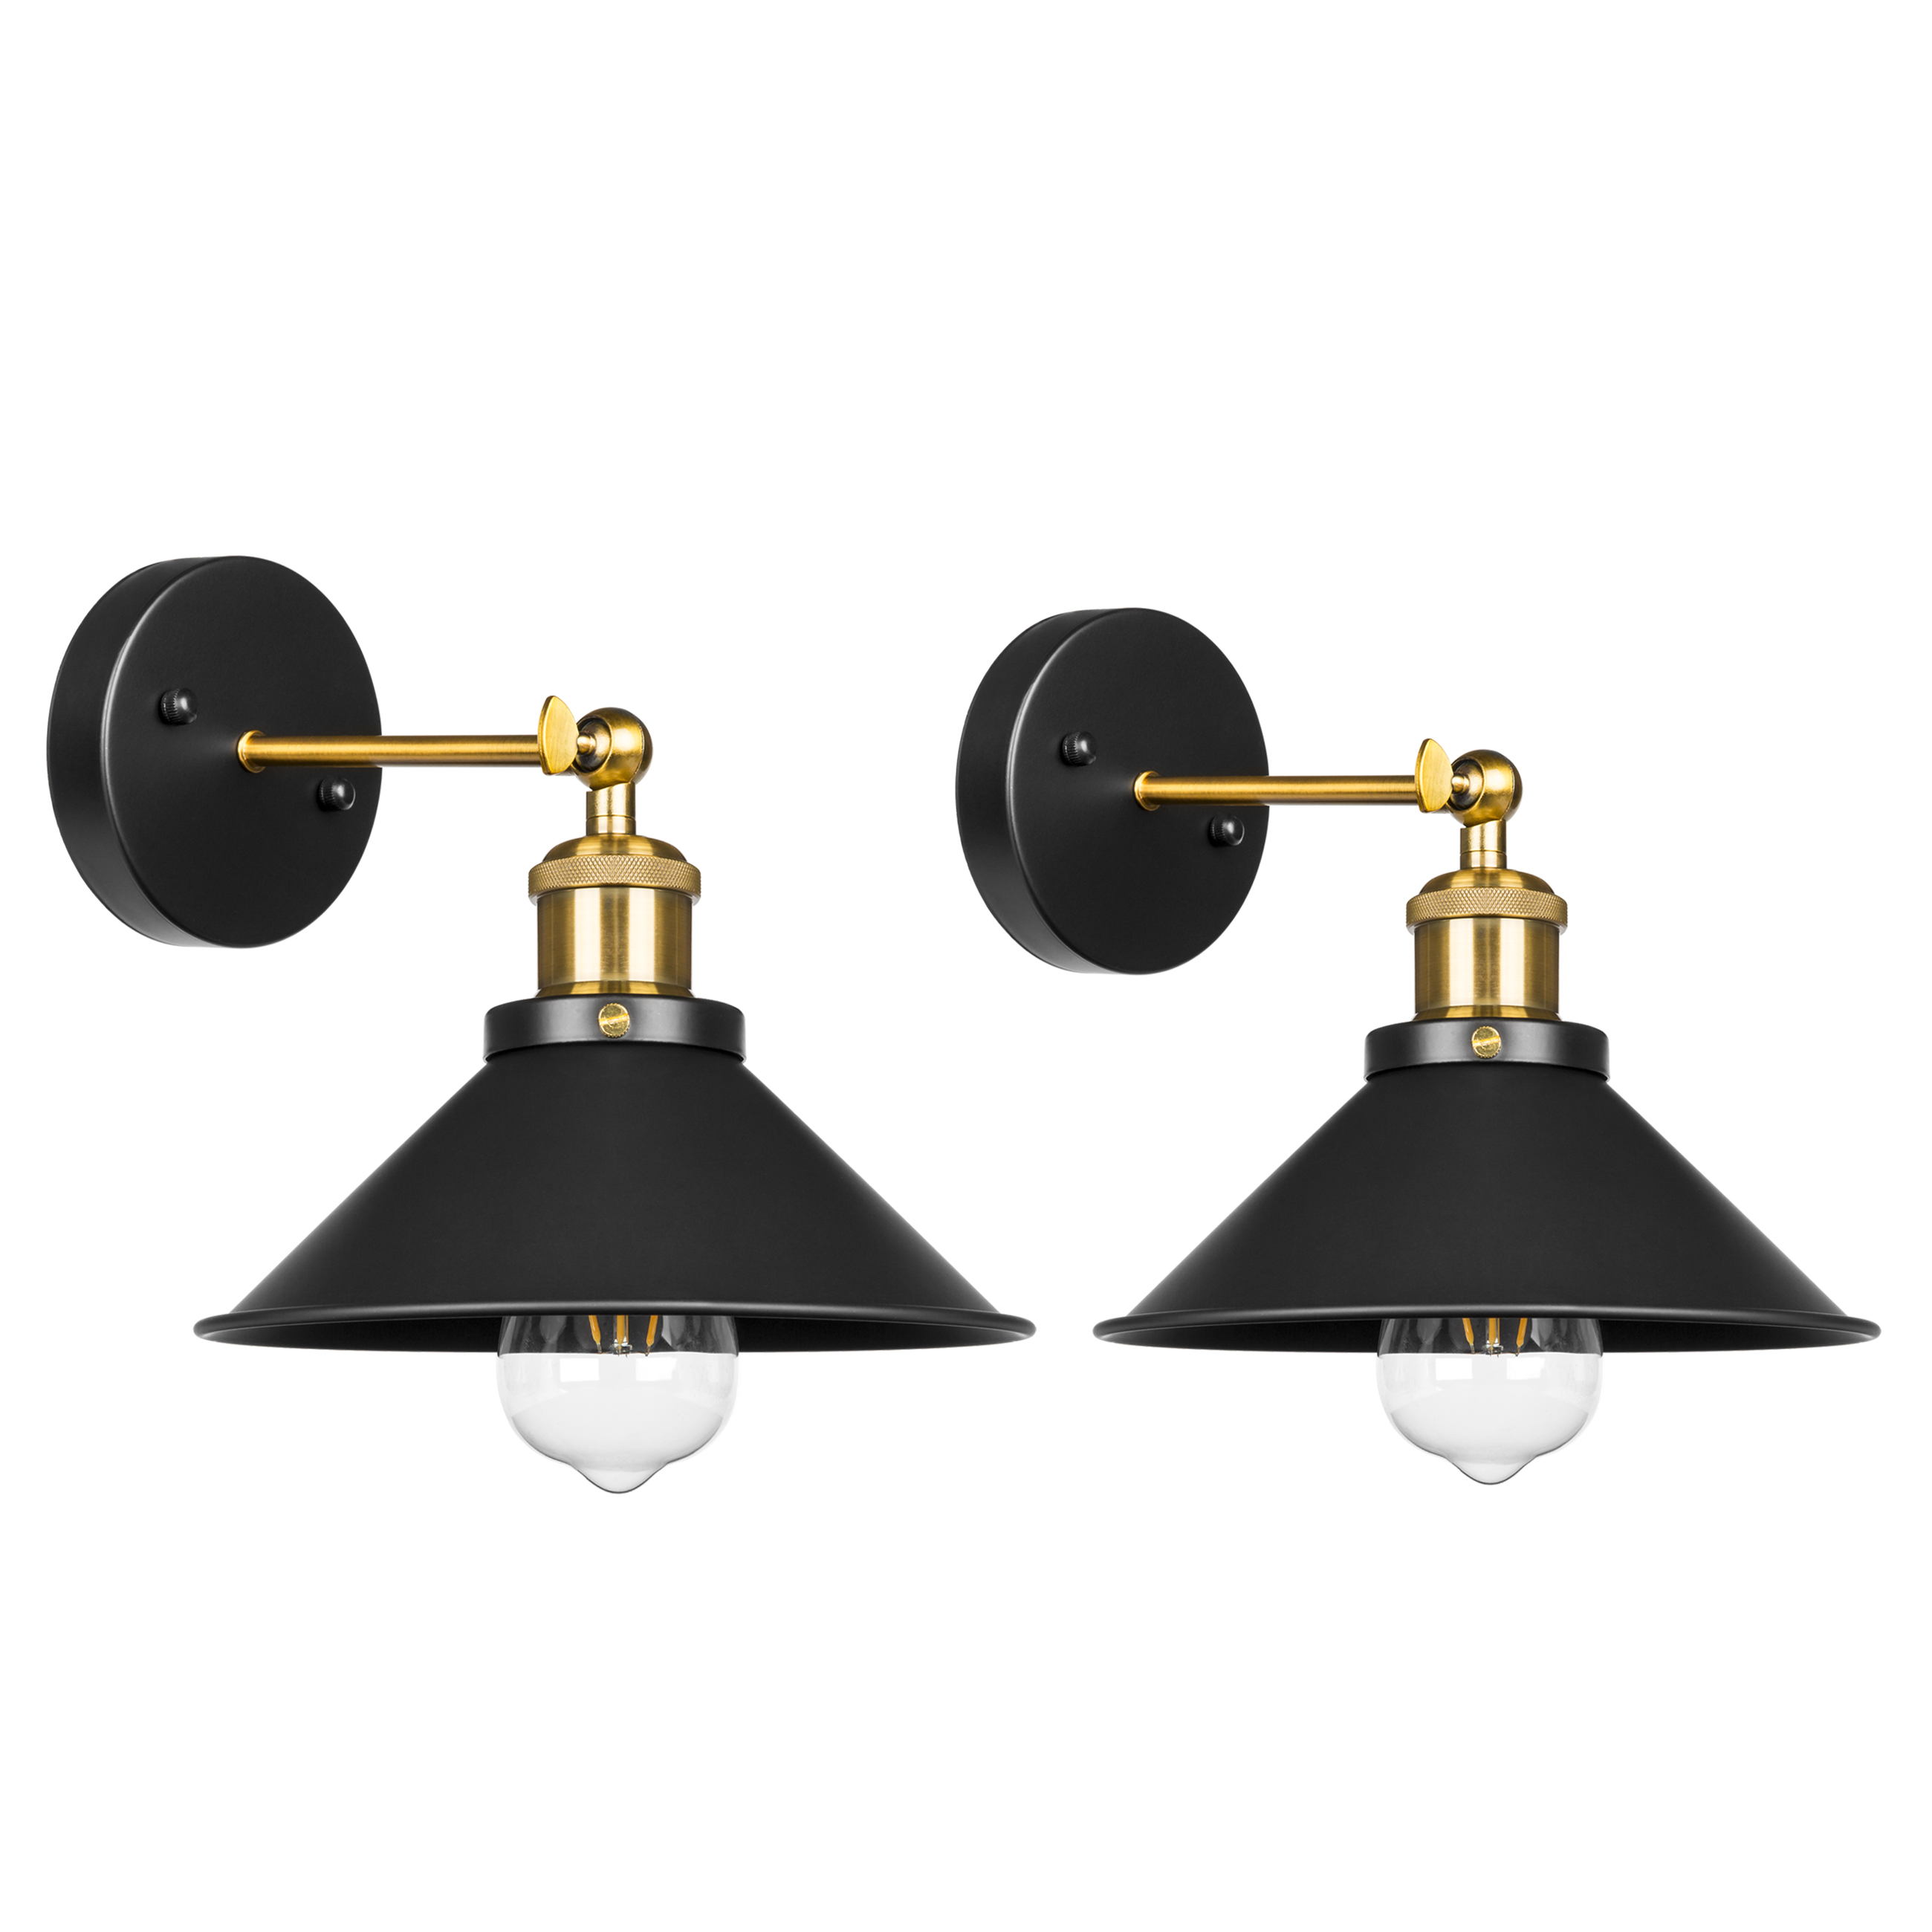 Best Choice Products Set of 2 Industrial Vintage Metal Hardwire Pendant Wall Sconce Lamps w  Adjustable Head Black by Best Choice Products